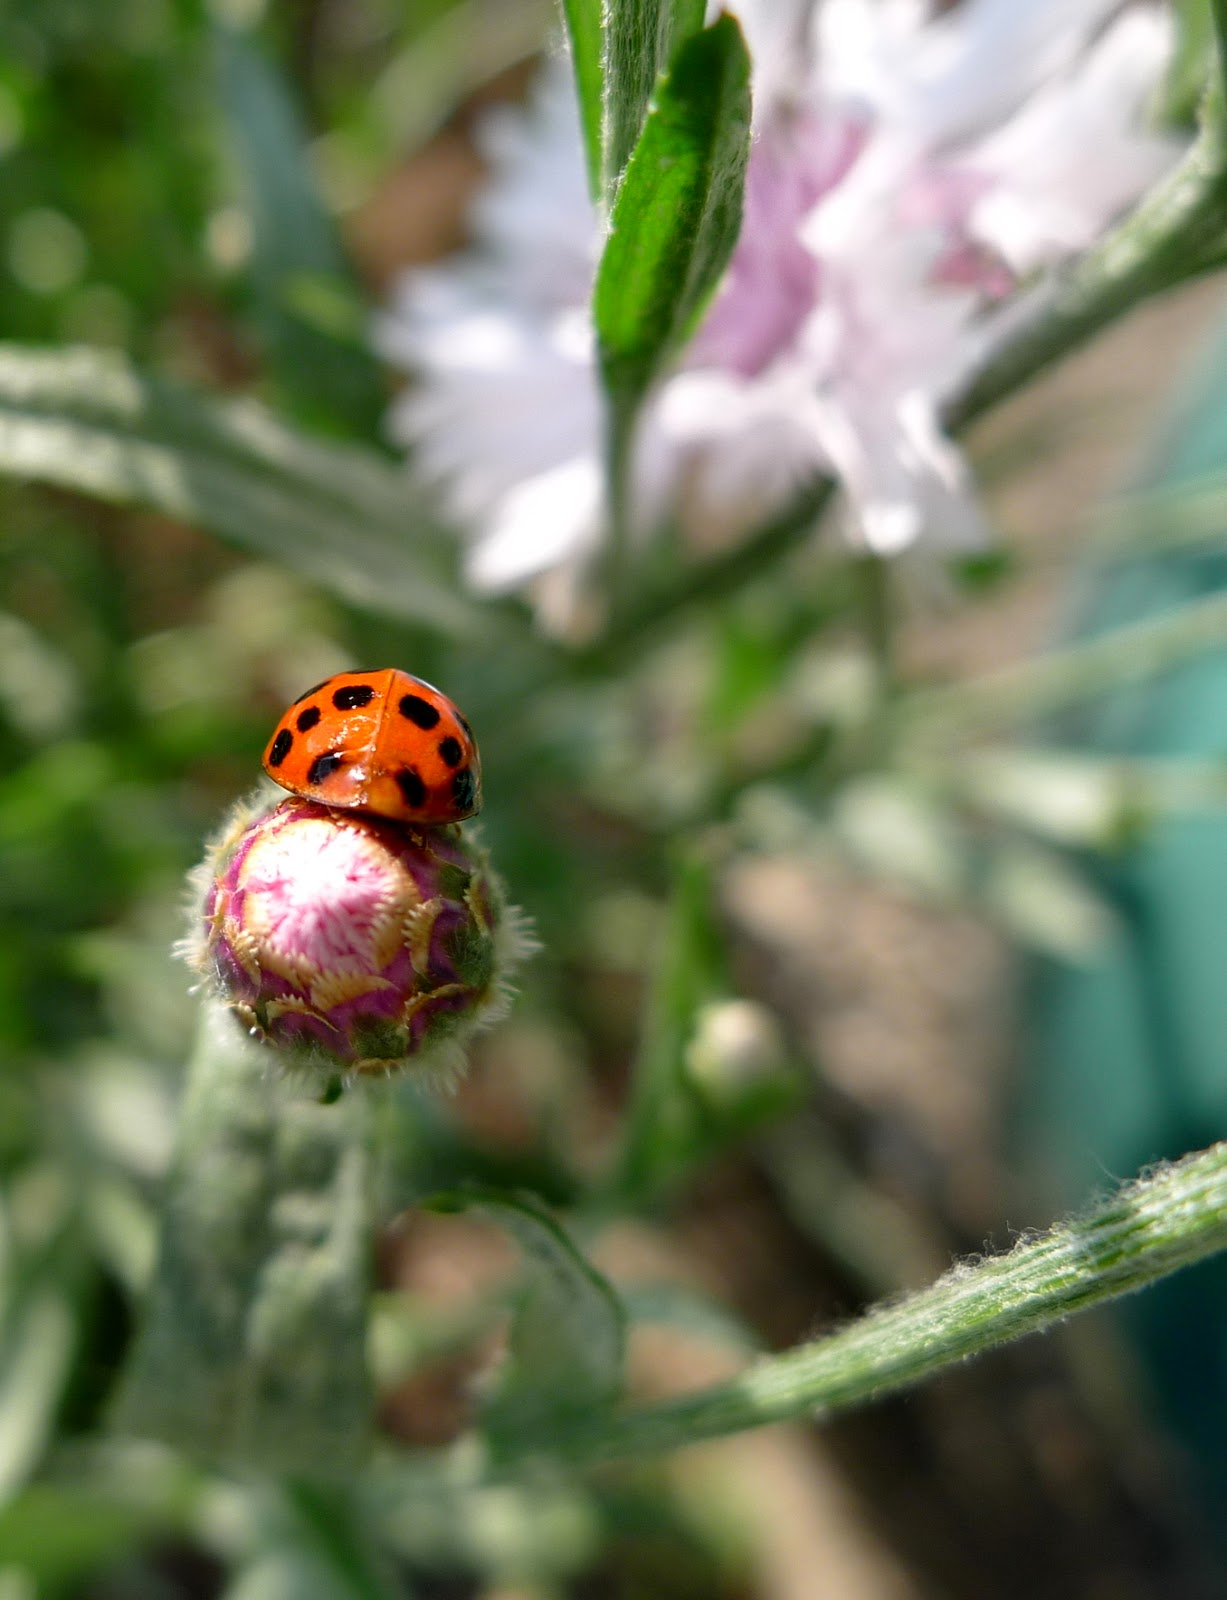 Lady bug, pollinators, urban farming